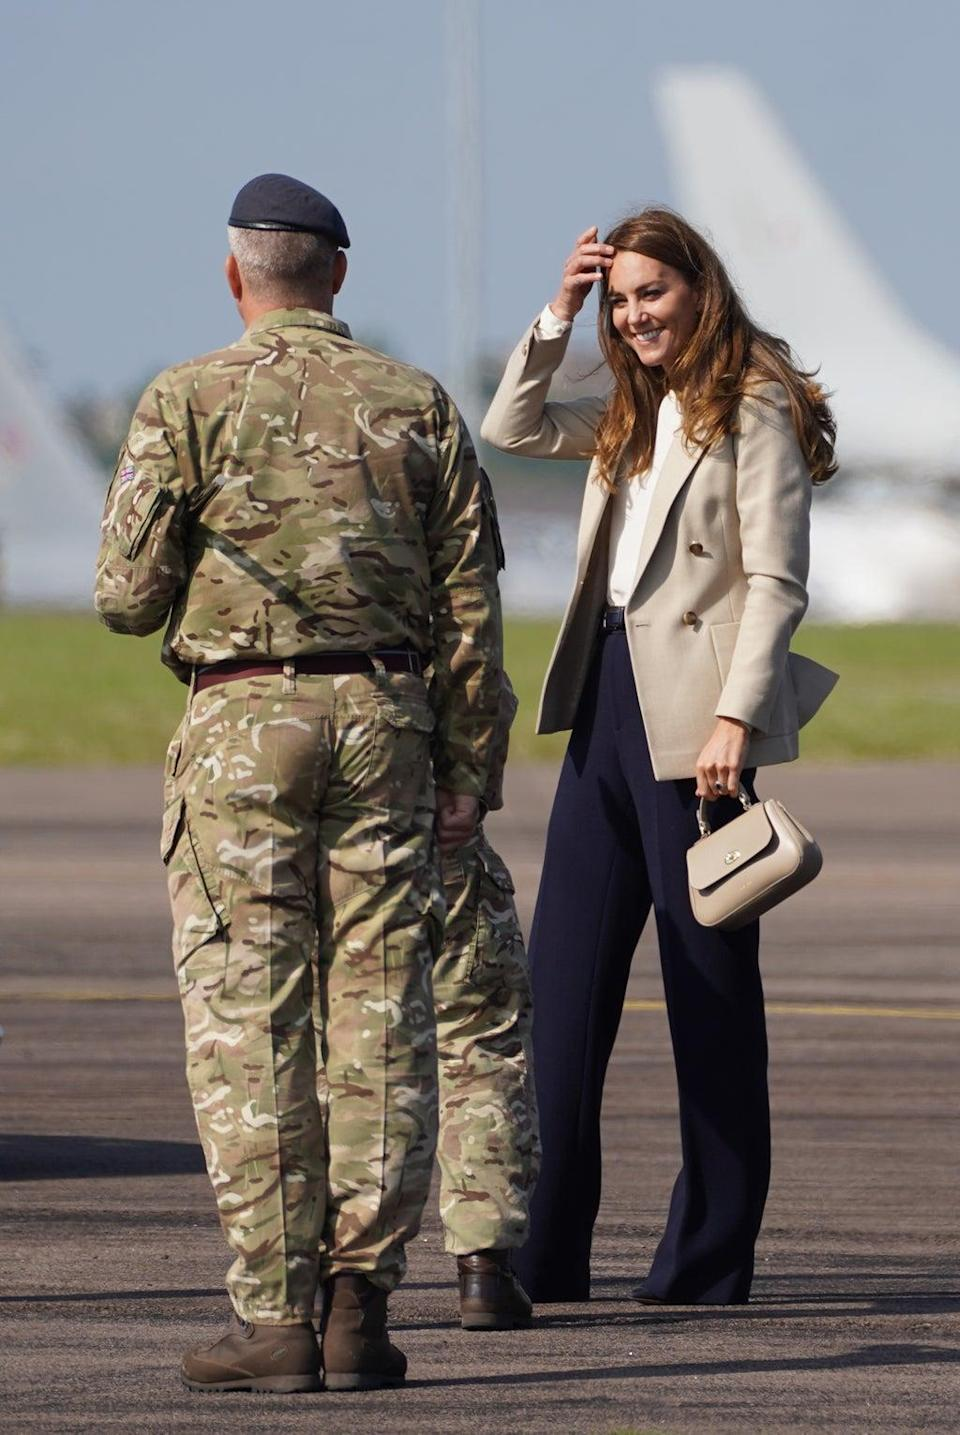 The Duchess of Cambridge arrives for a visit to RAF Brize Norton (Steve Parsons/PA) (PA Wire)